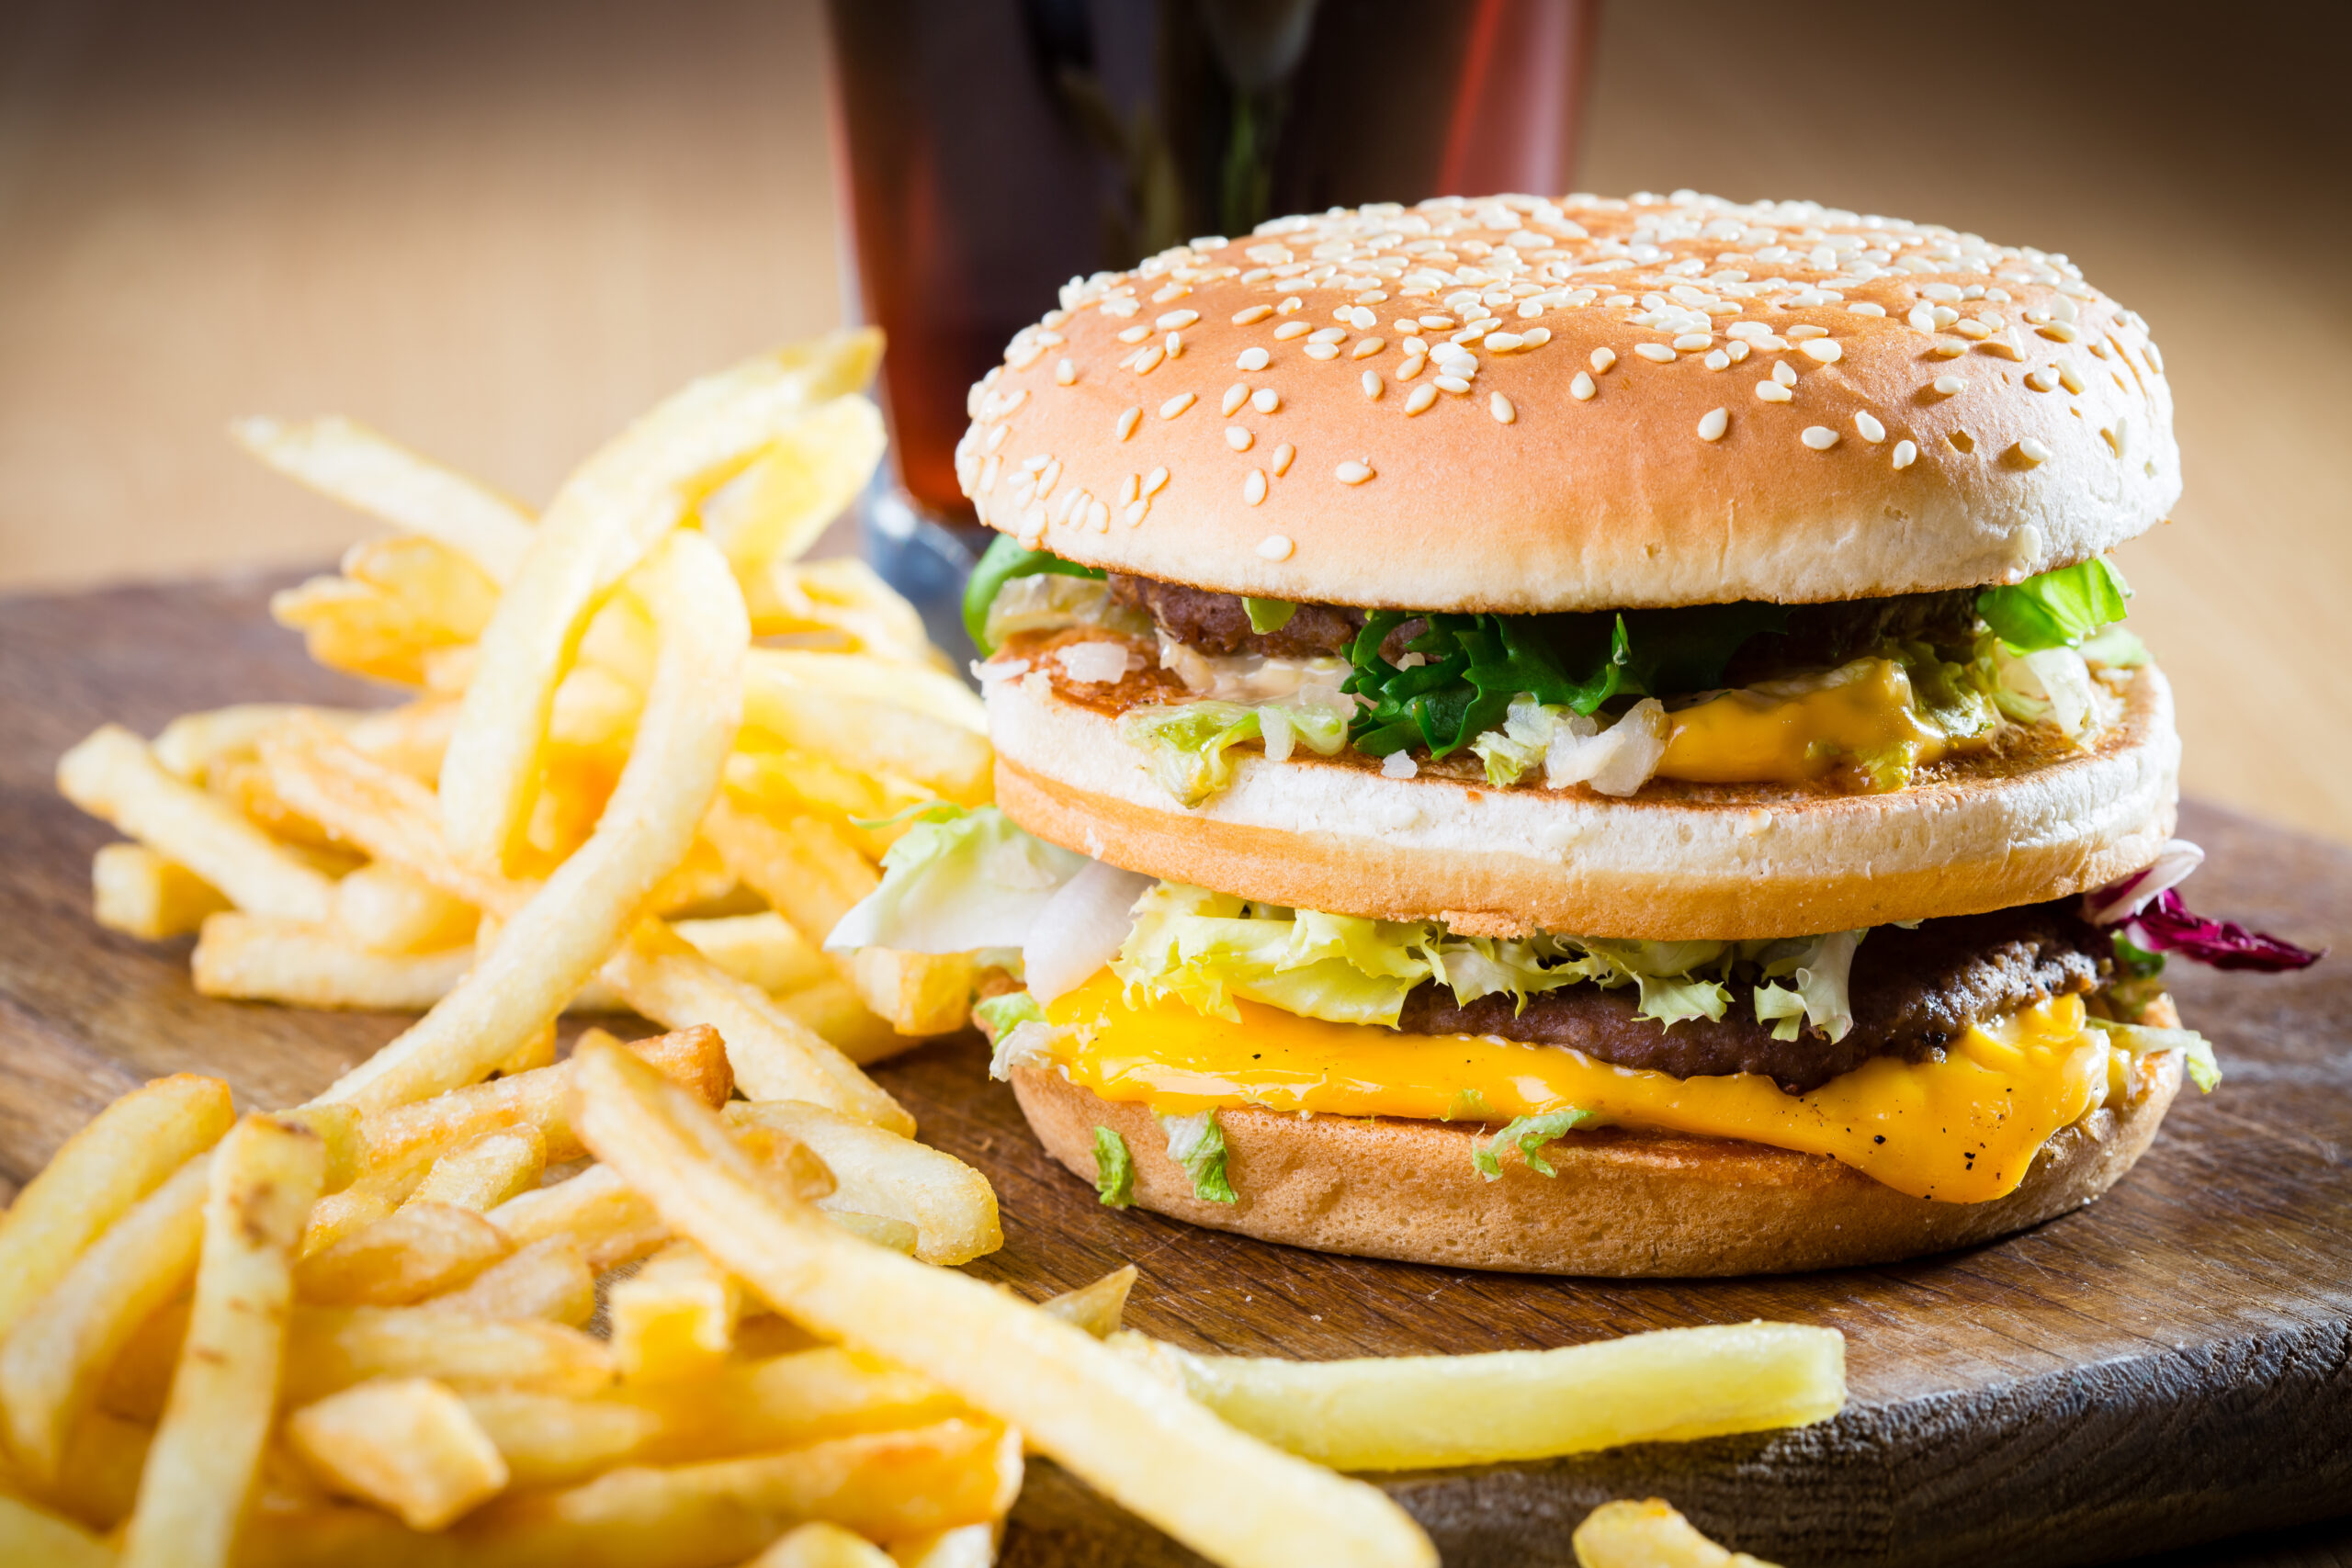 Christian organization attacks fast food for being too pro-LGBTQ